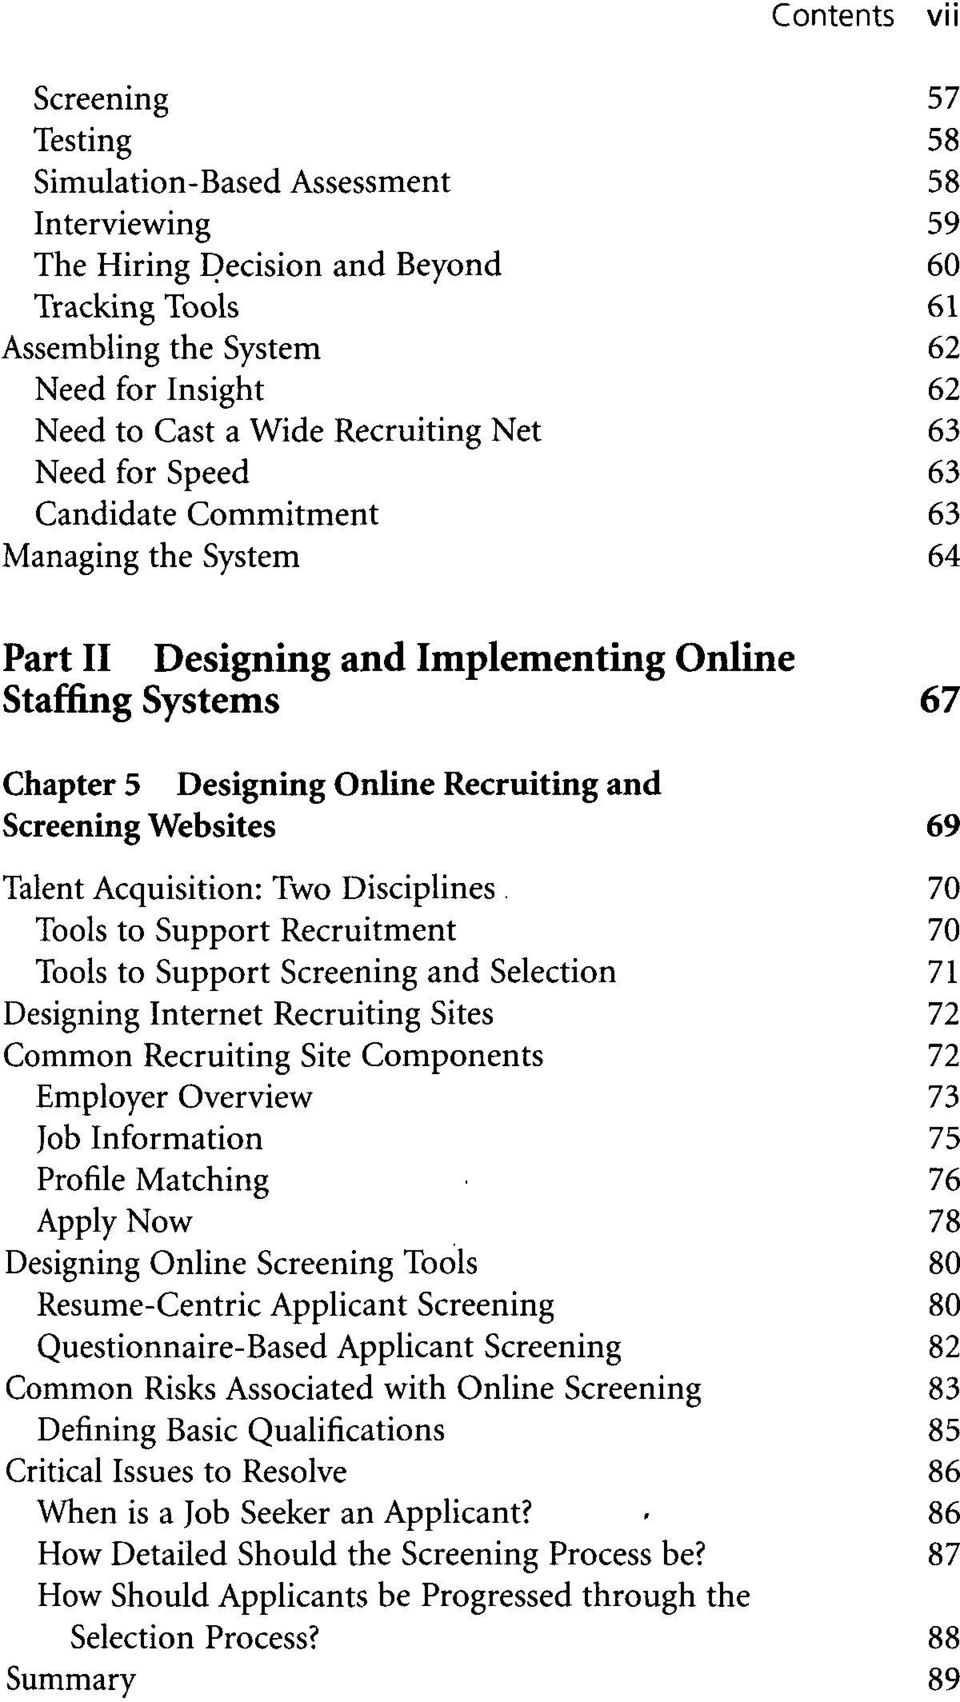 Screening Websites 69 Talent Acquisition: Two Disciplines 70 Tools to Support Recruitment 70 Tools to Support Screening and Selection 71 Designing Internet Recruiting Sites 72 Common Recruiting Site